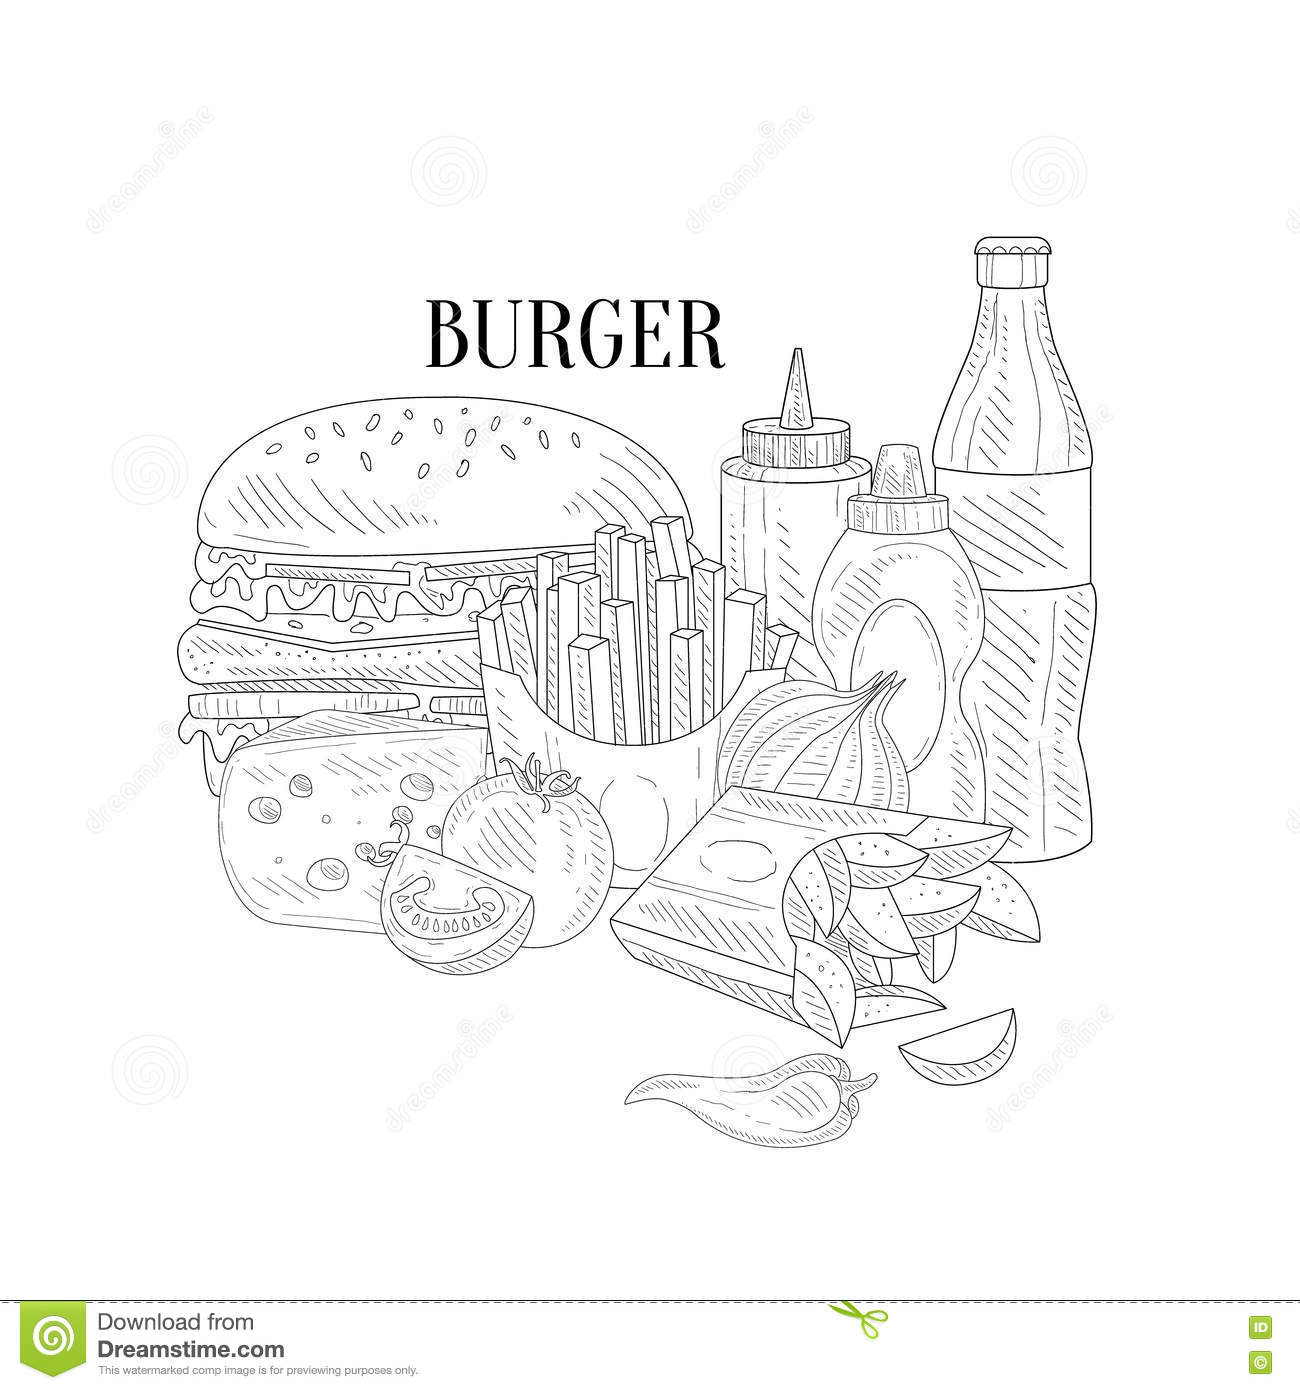 Burger fries and soda fast food lunch hand drawn realistic detailed sketch in classy simple pencil style on white background